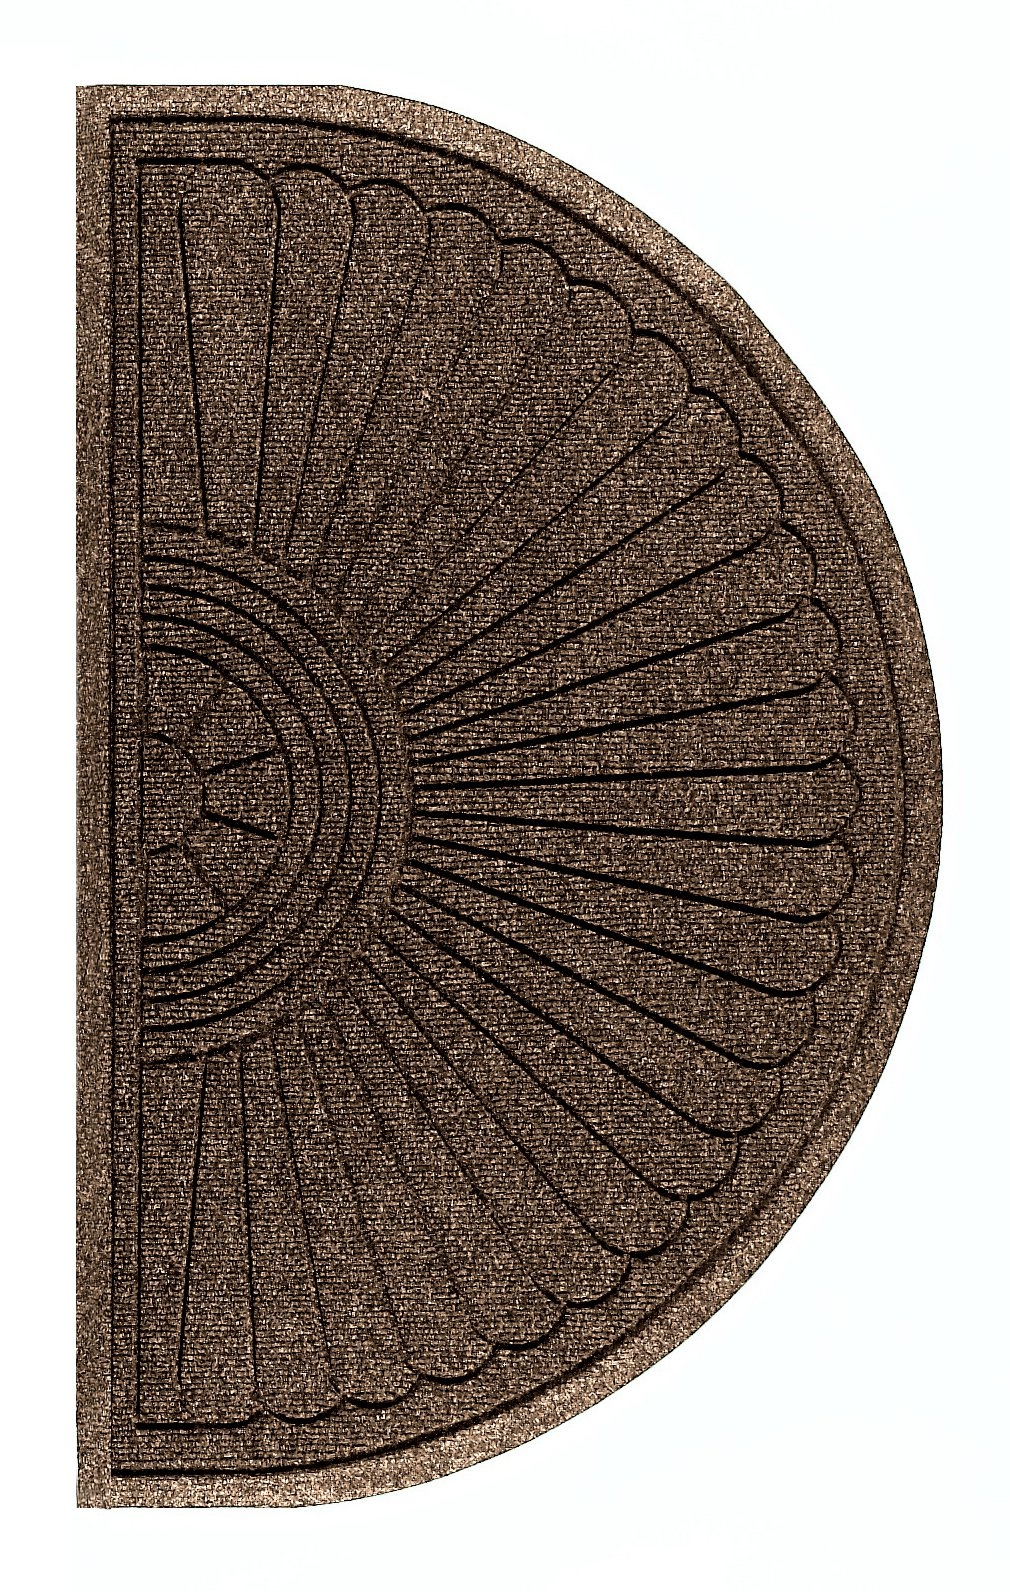 Andersen 2246 Waterhog Eco Grand Premier PET Polyester Fiber Half Oval Entrance Indoor/Outdoor Floor Mat, SBR Rubber Backing, 3.3' Length x 6' Width, 3/8'' Thick, Chestnut Brown by The Andersen Company